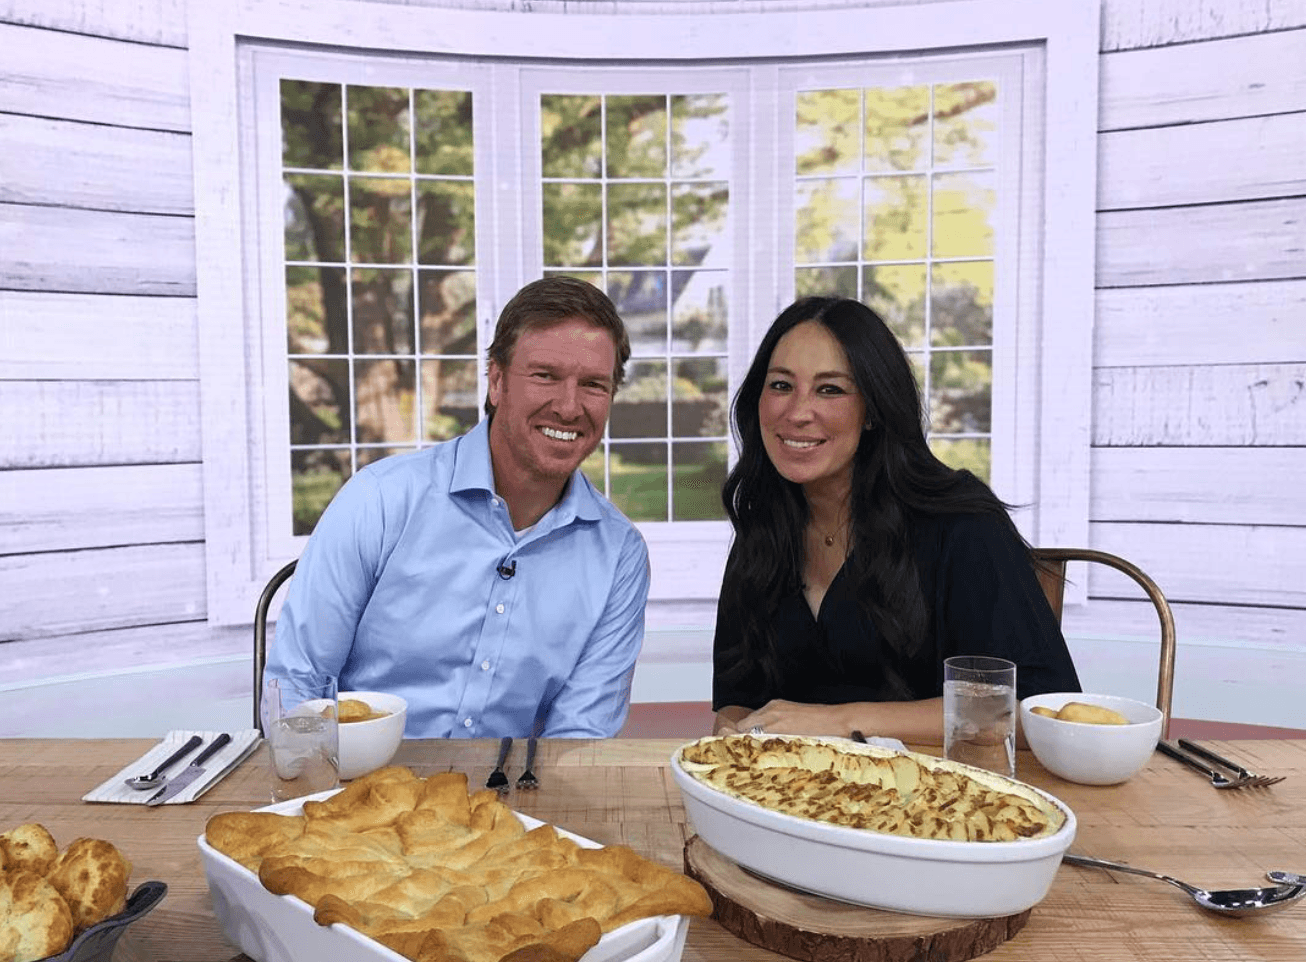 Chip and Joanna Gaines at her cookbook launch